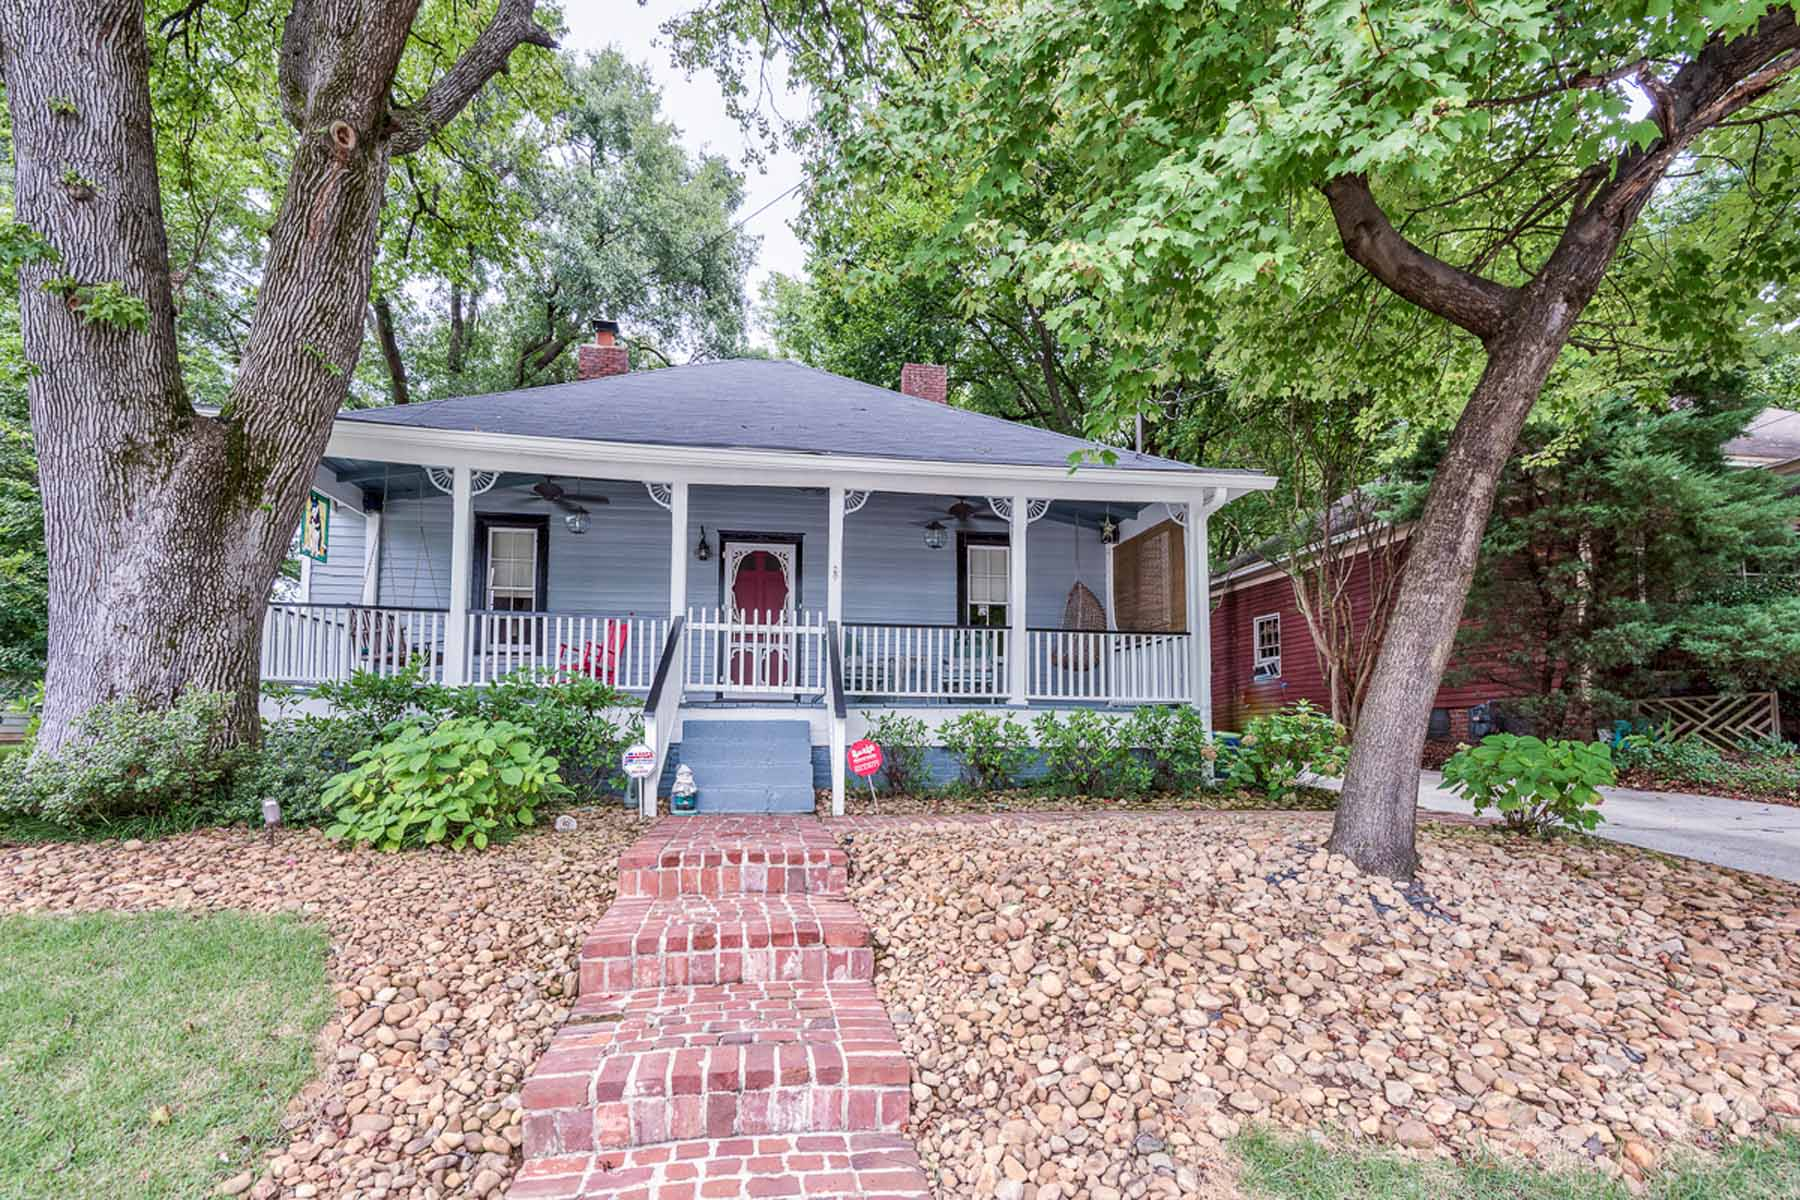 Property For Sale at Renovated, Restored and Oh So Charming Whittier Mills Bungalow!